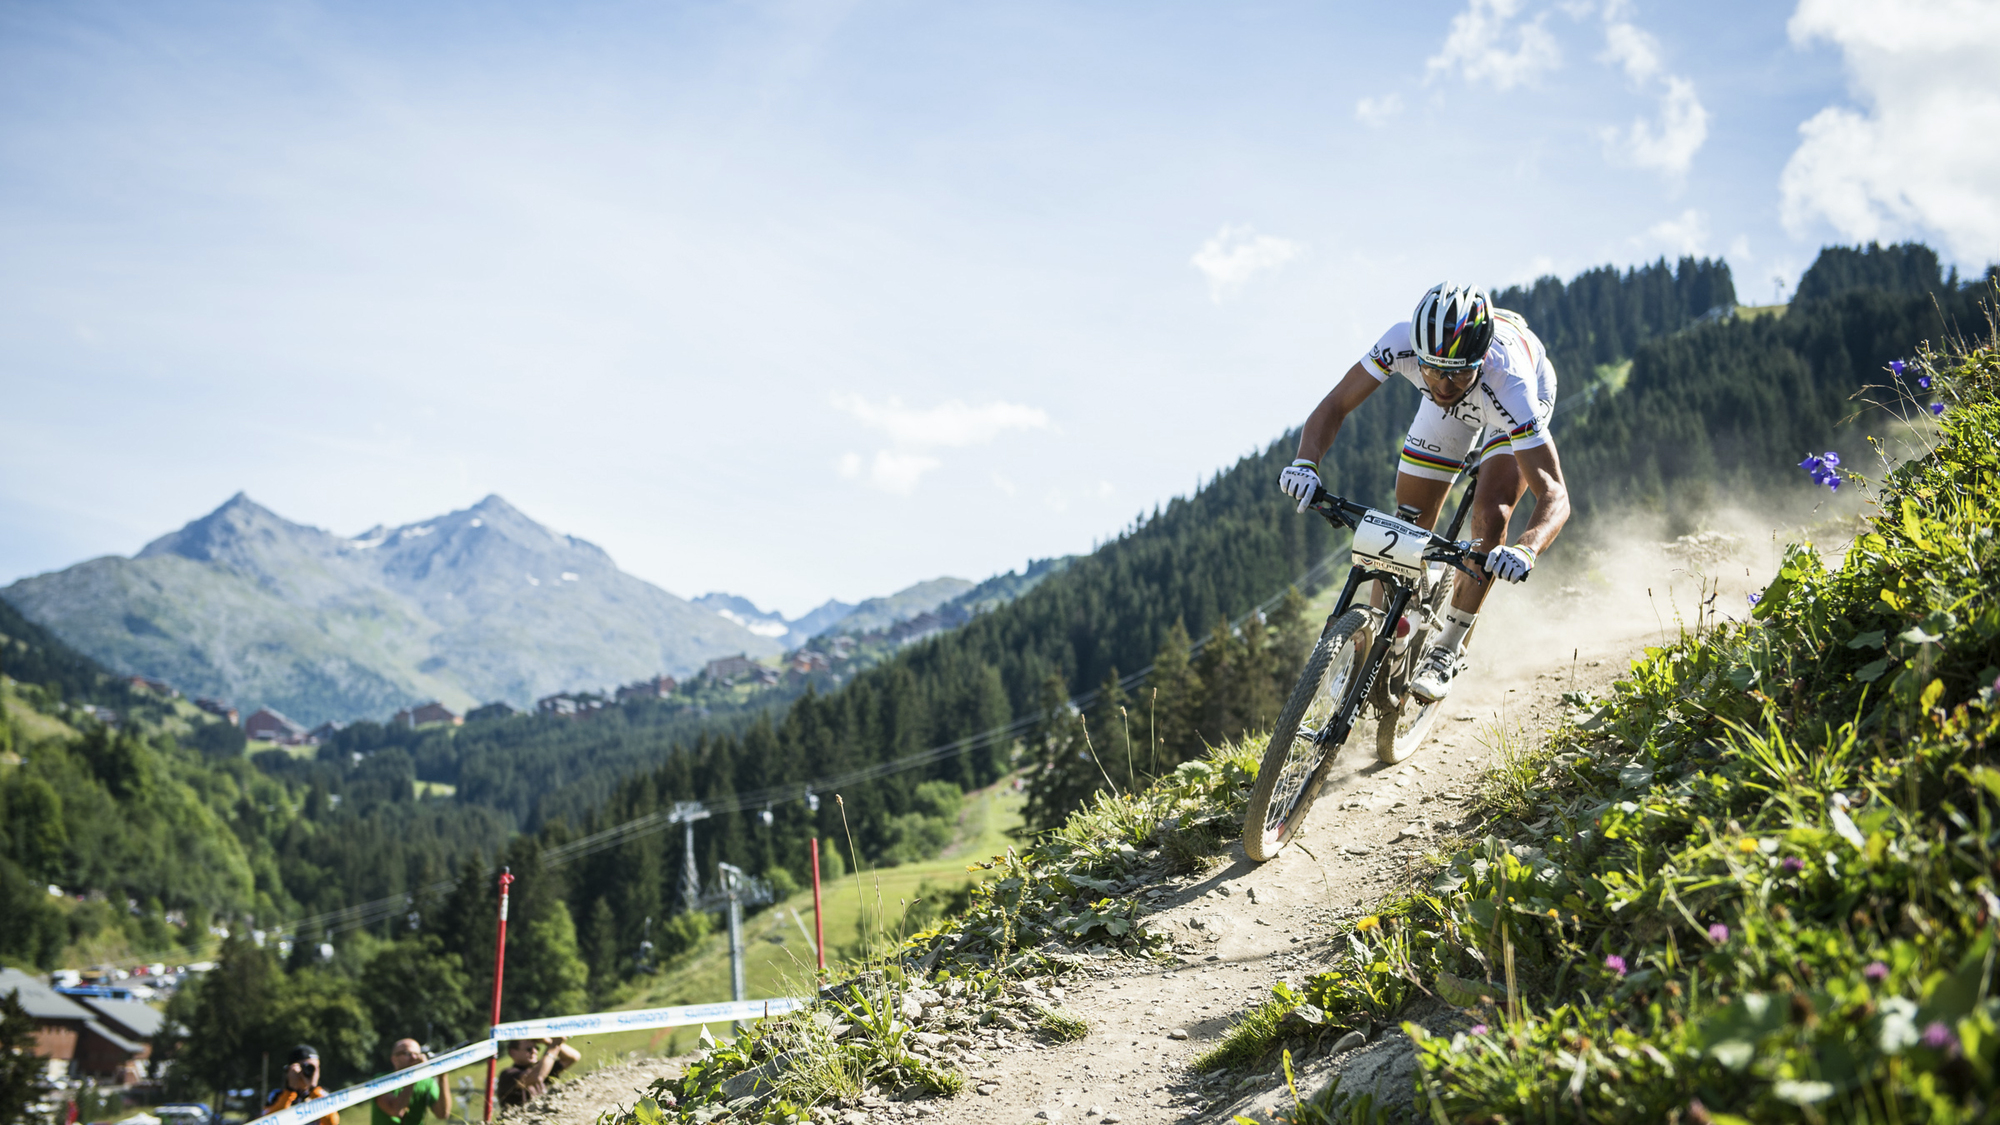 SCOTT-Odlo_Meribel_News_1200x675_2014_BIKE_SCOTT Sports_44